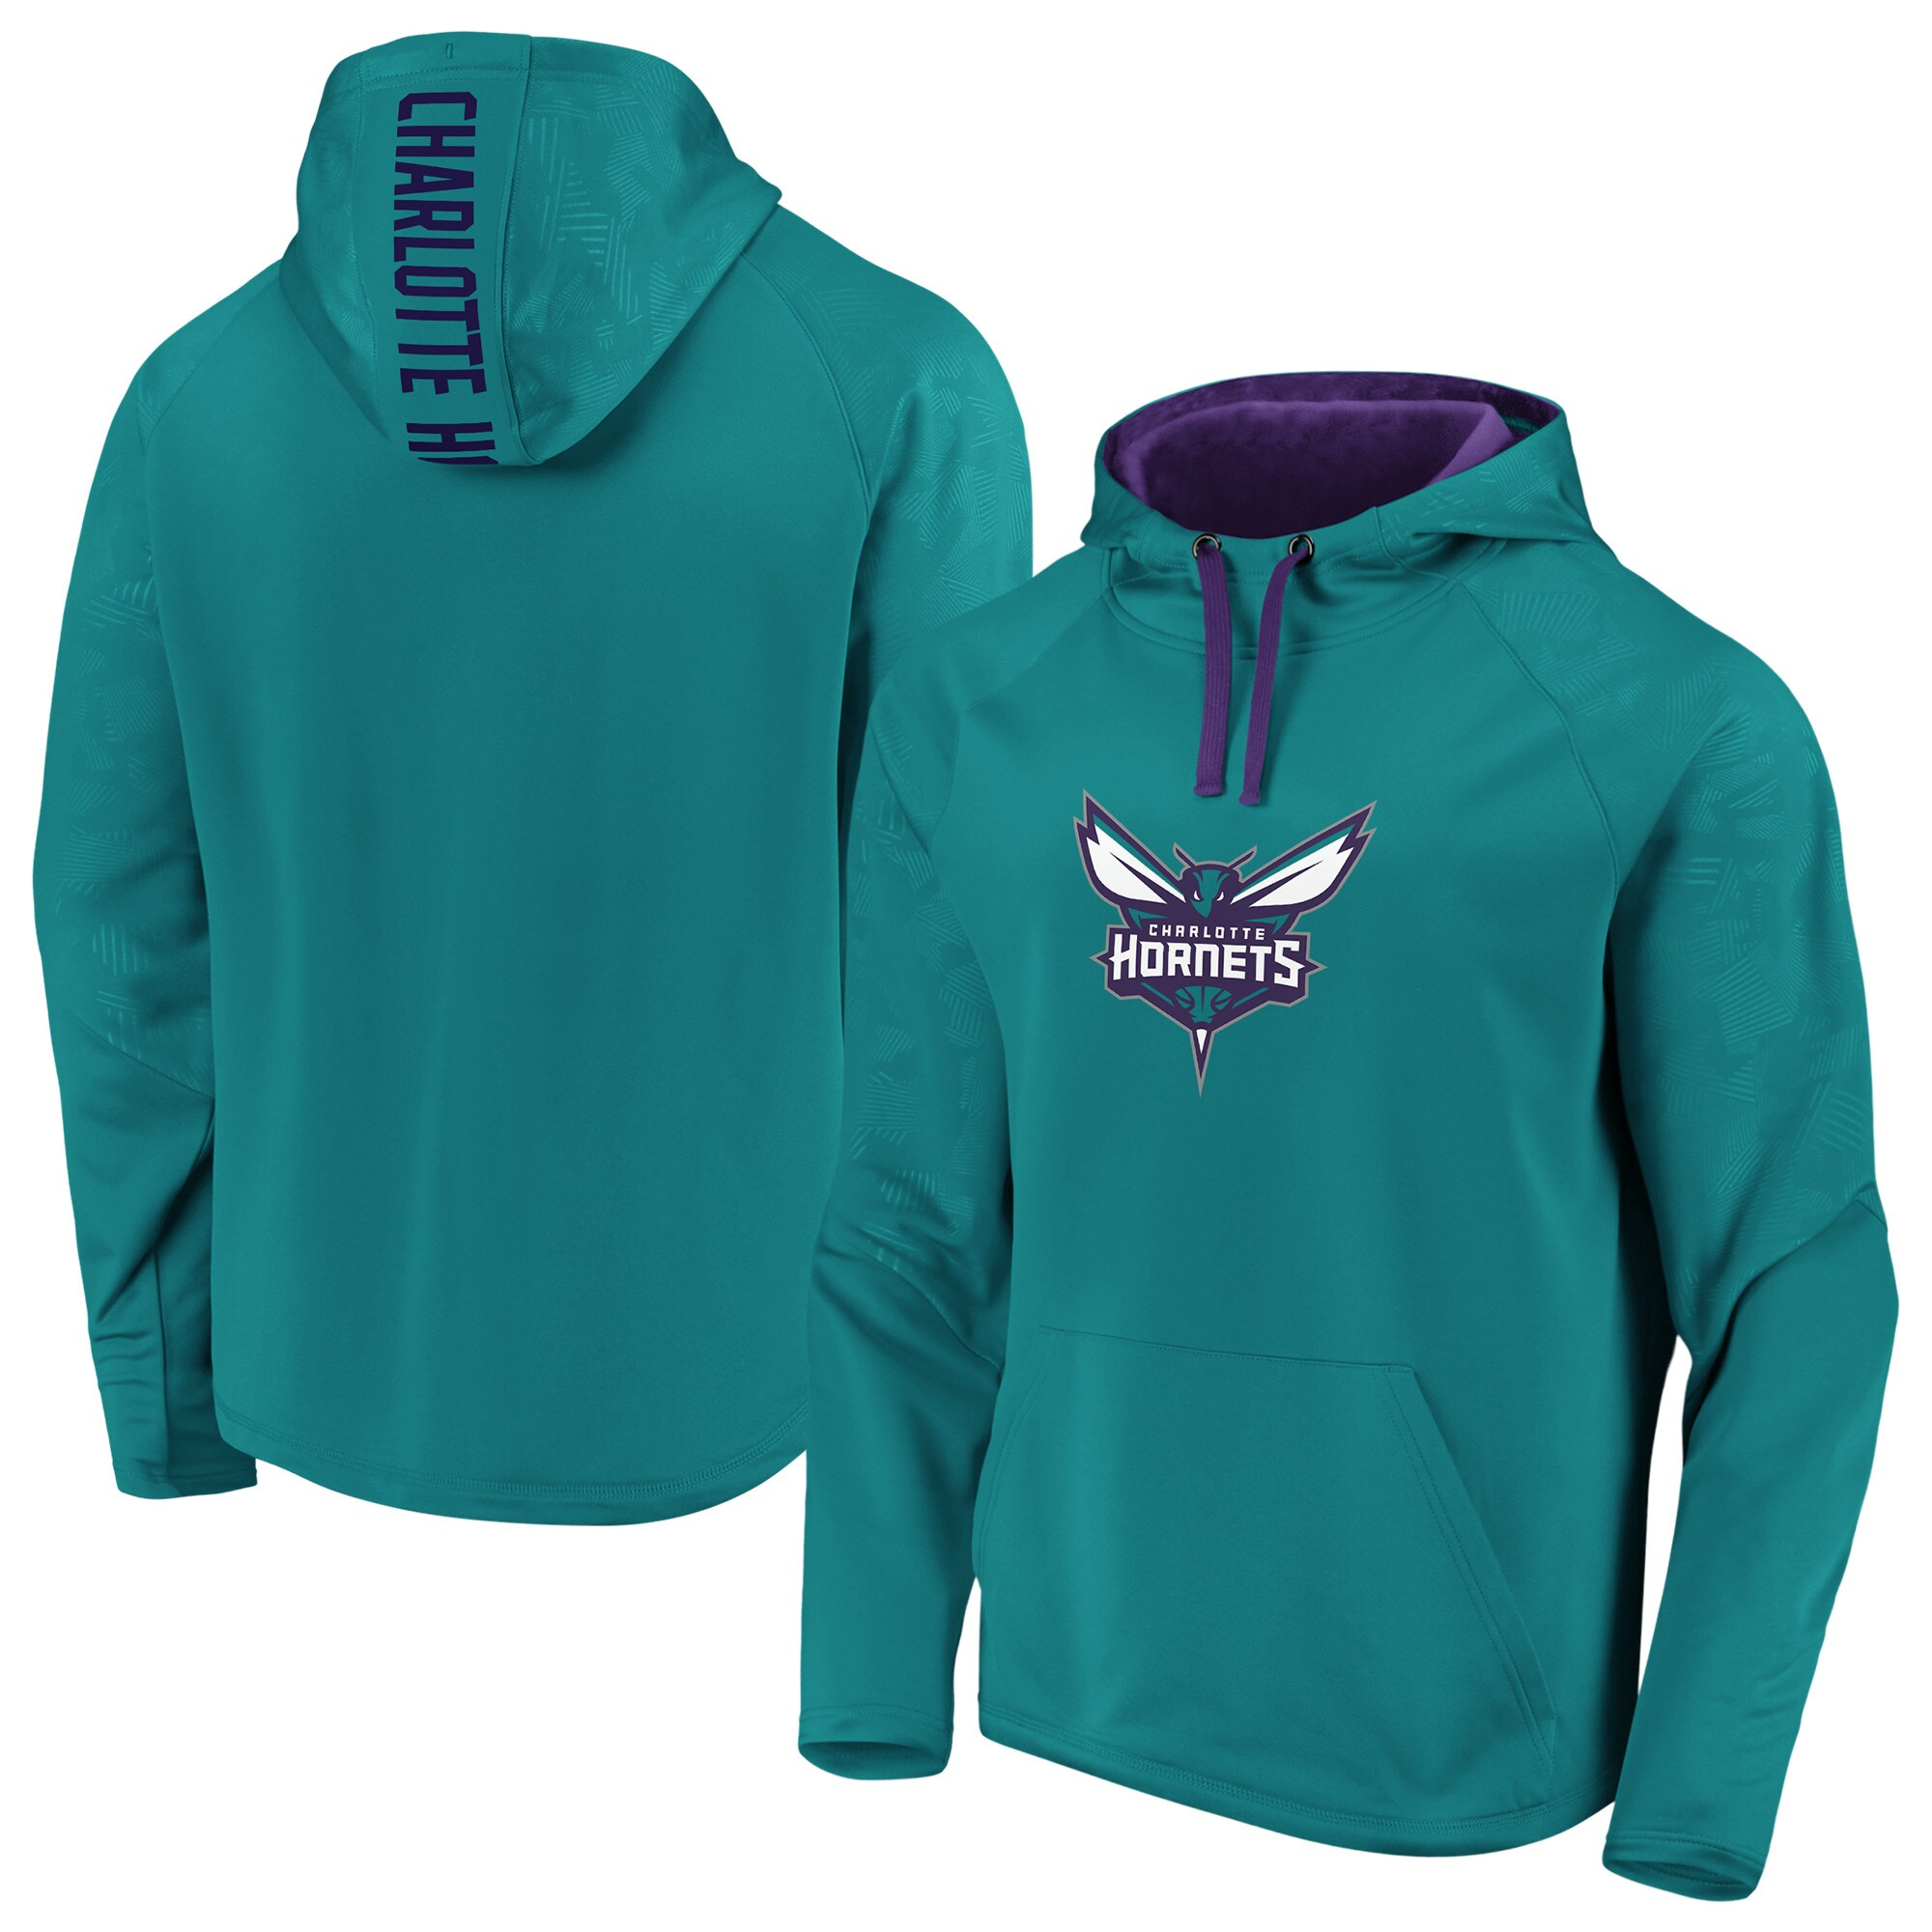 Charlotte Hornets Fanatics Branded Iconic Defender Performance Primary Logo Pullover Hoodie - Teal/Purple